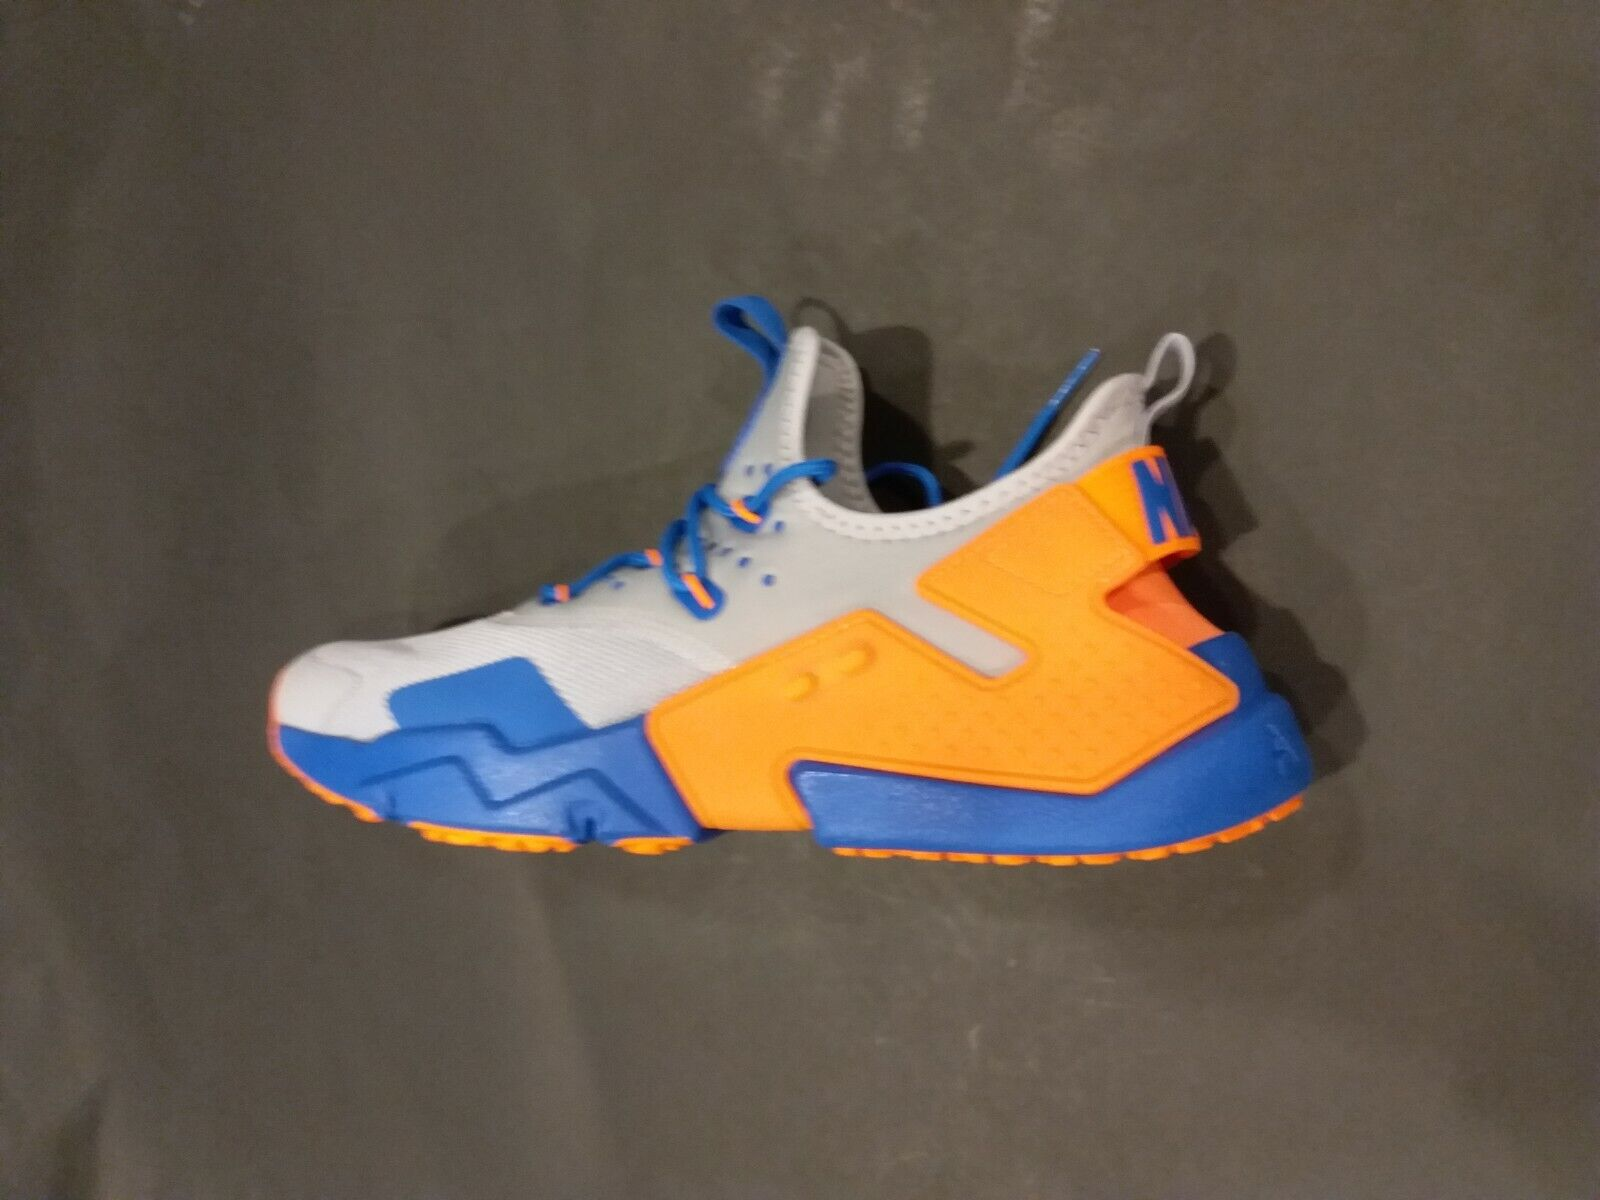 Nike Air Huarache Drift Grey blueee orange AH7334-005 Size 10 Rare colorway